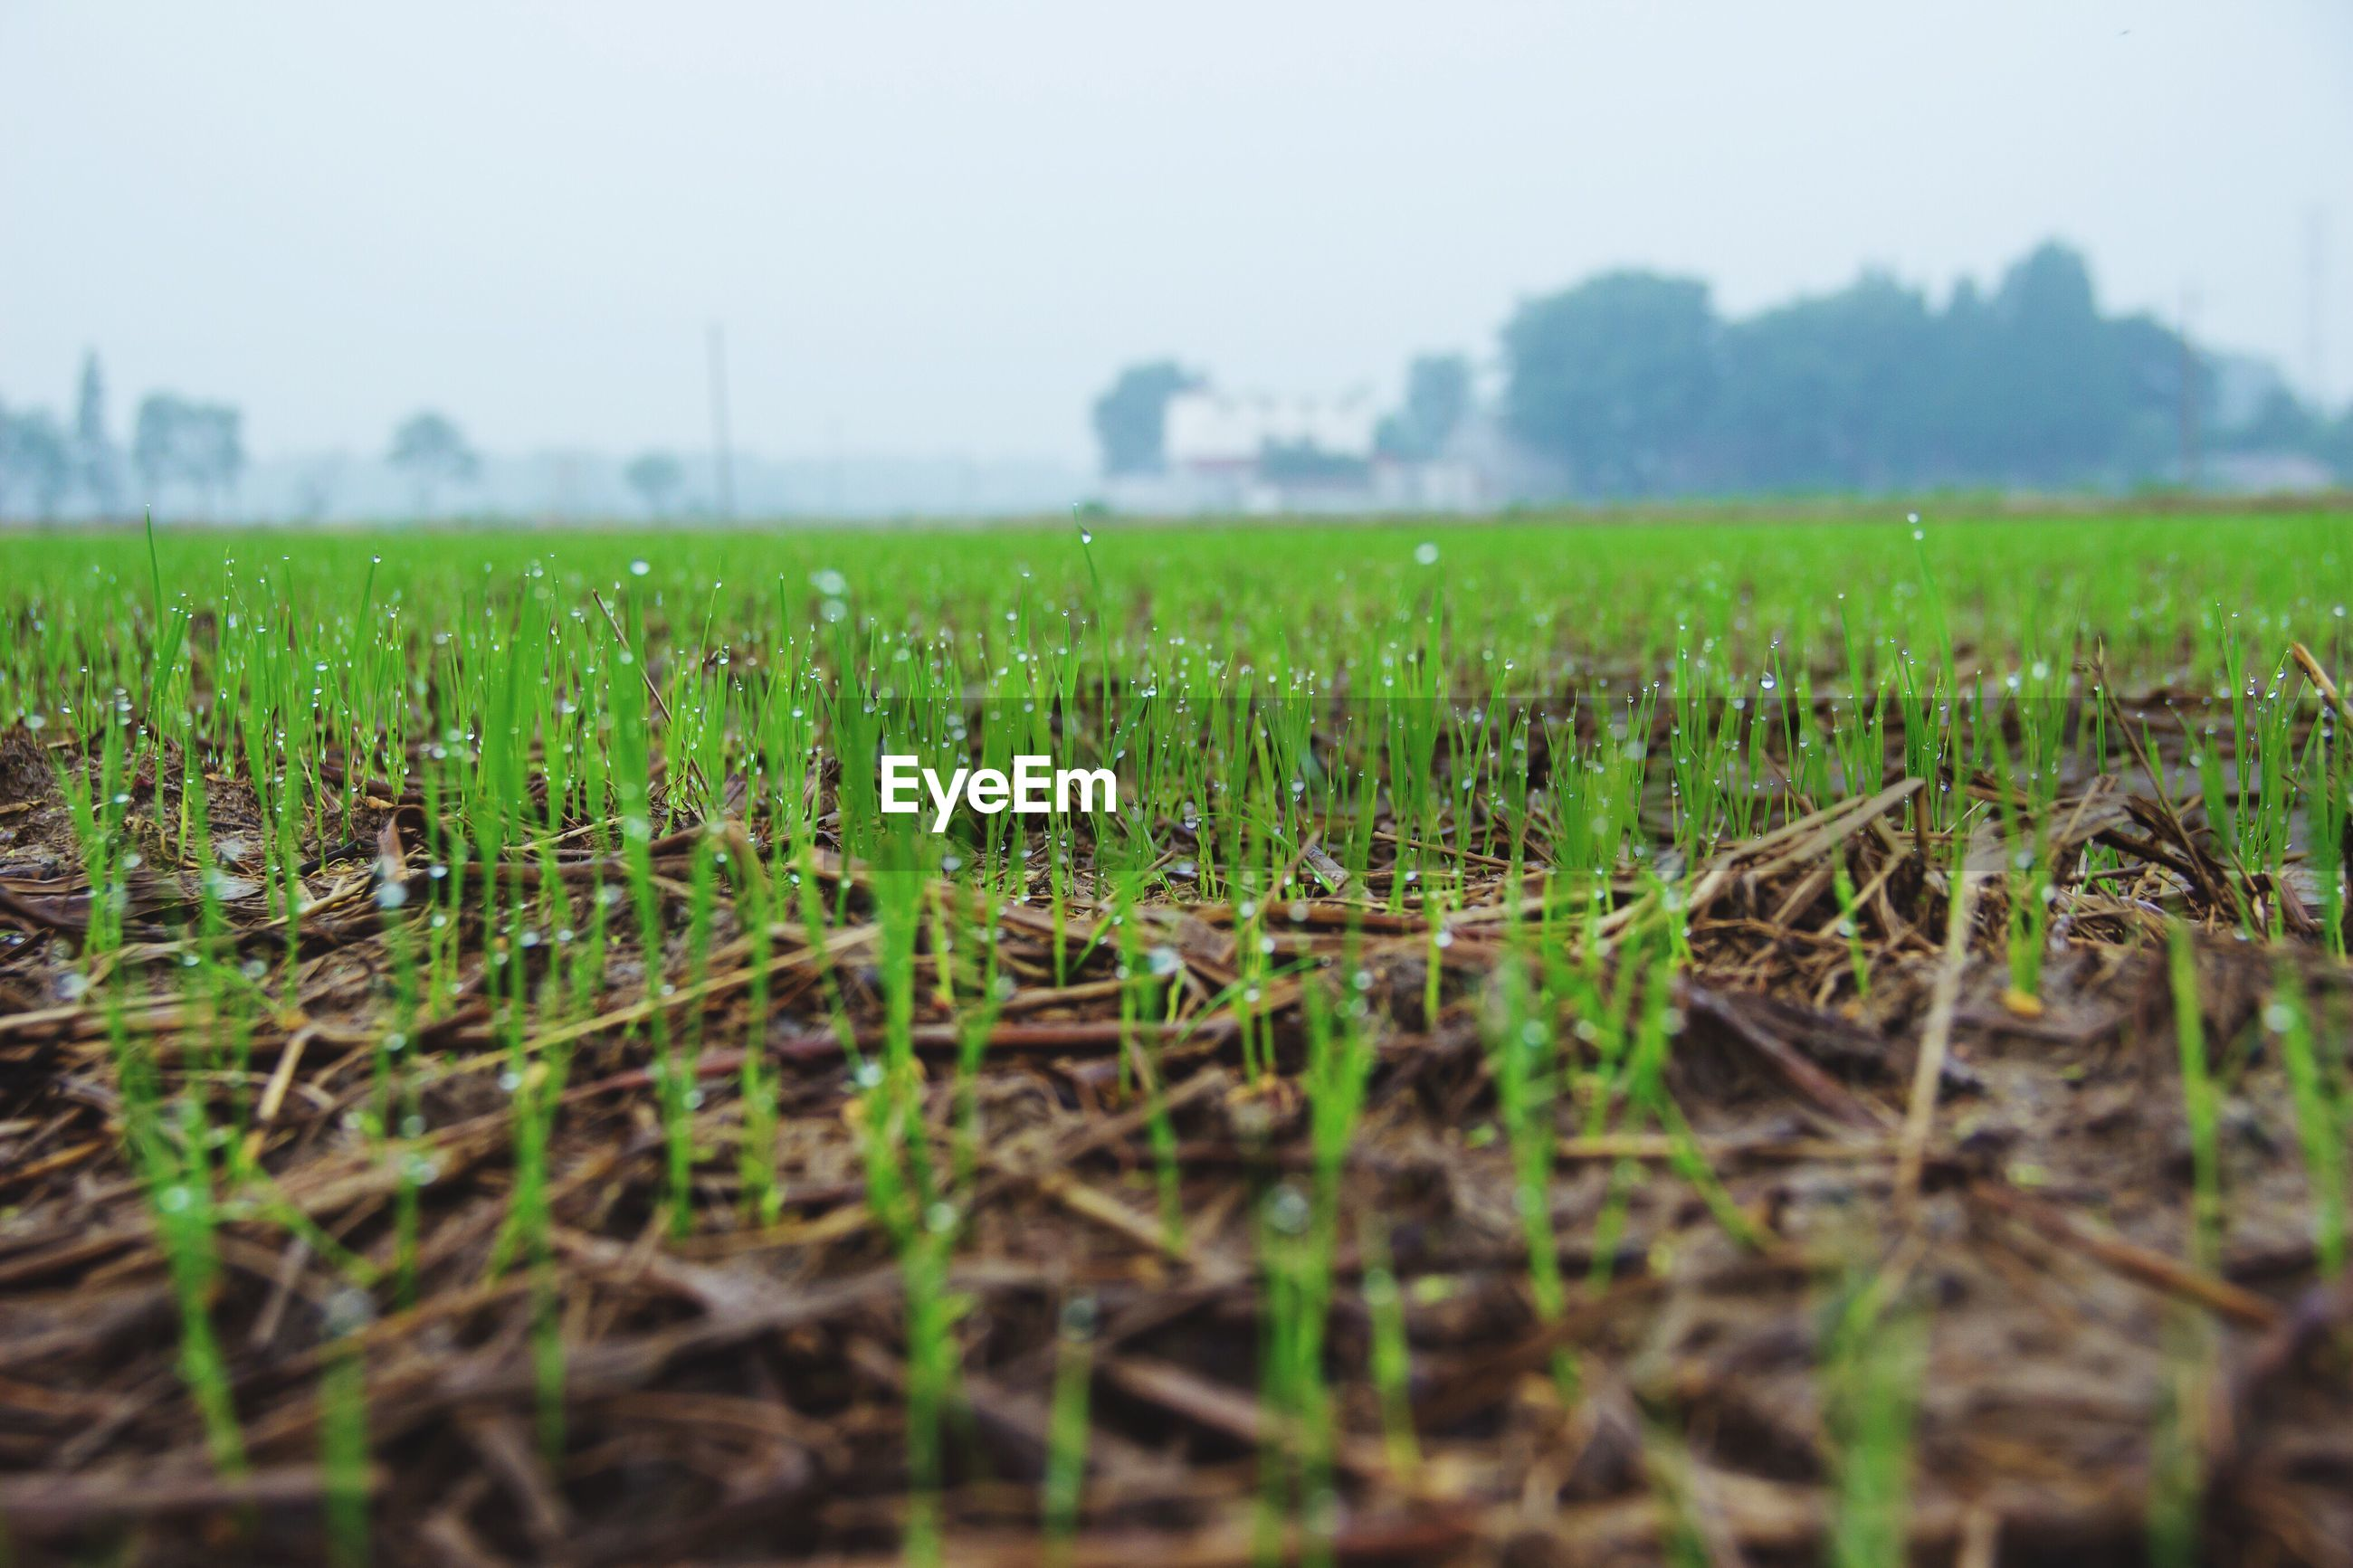 green color, field, growth, grass, landscape, selective focus, nature, close-up, rural scene, farm, clear sky, tranquility, sky, surface level, beauty in nature, scenics, tranquil scene, plant, focus on foreground, agriculture, day, outdoors, remote, solitude, no people, majestic, blade of grass, green, grassy